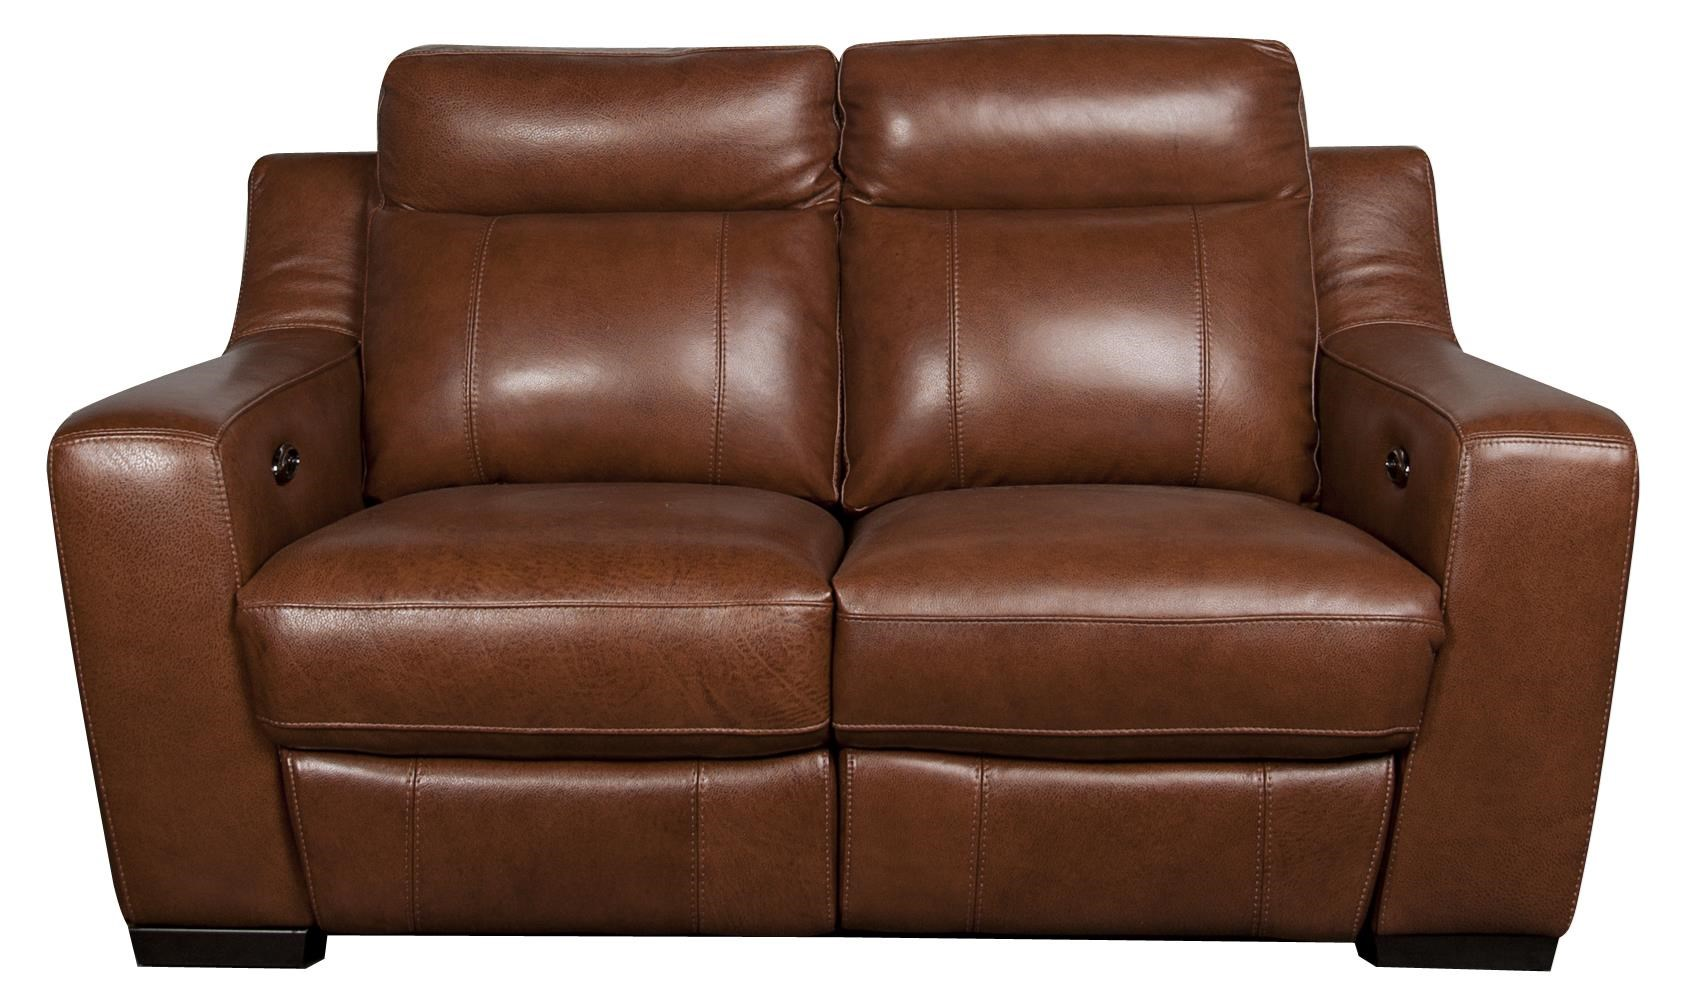 leather sofa columbus ohio sectional sofas columbus ohio leather thesofa. Black Bedroom Furniture Sets. Home Design Ideas